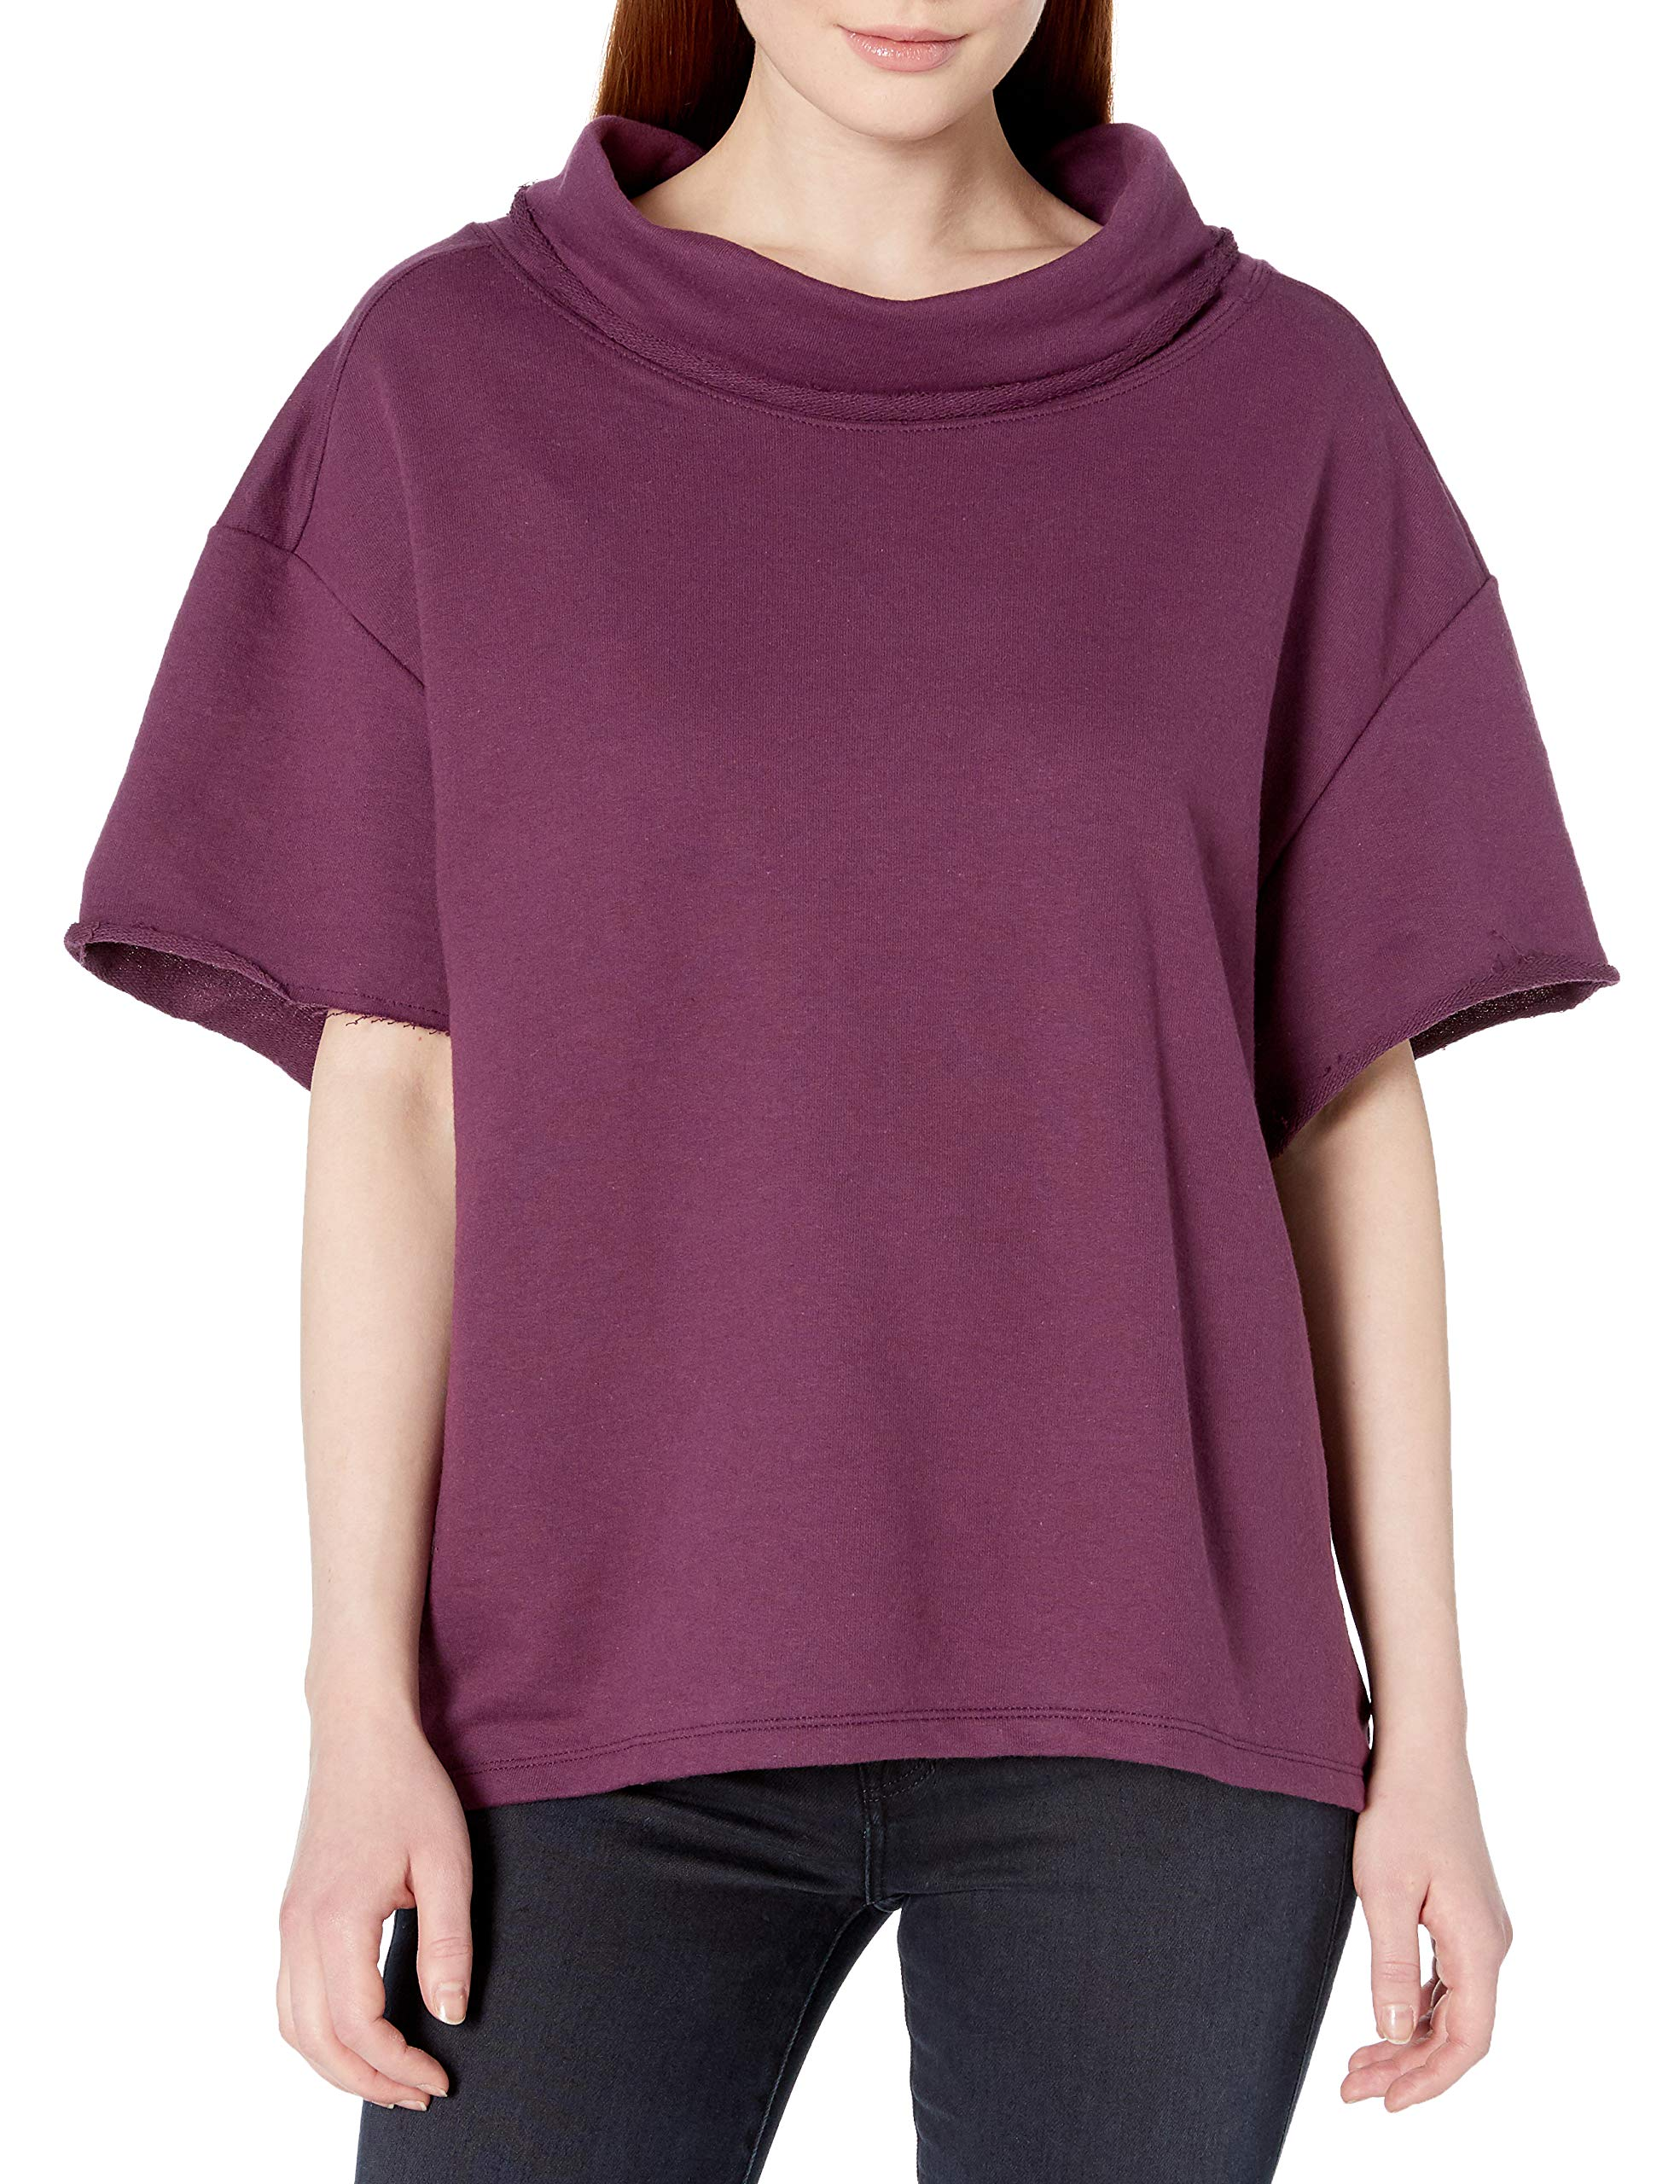 Fruit of the Loom Women's Essentials Over The Top Cowl Neck Pullover